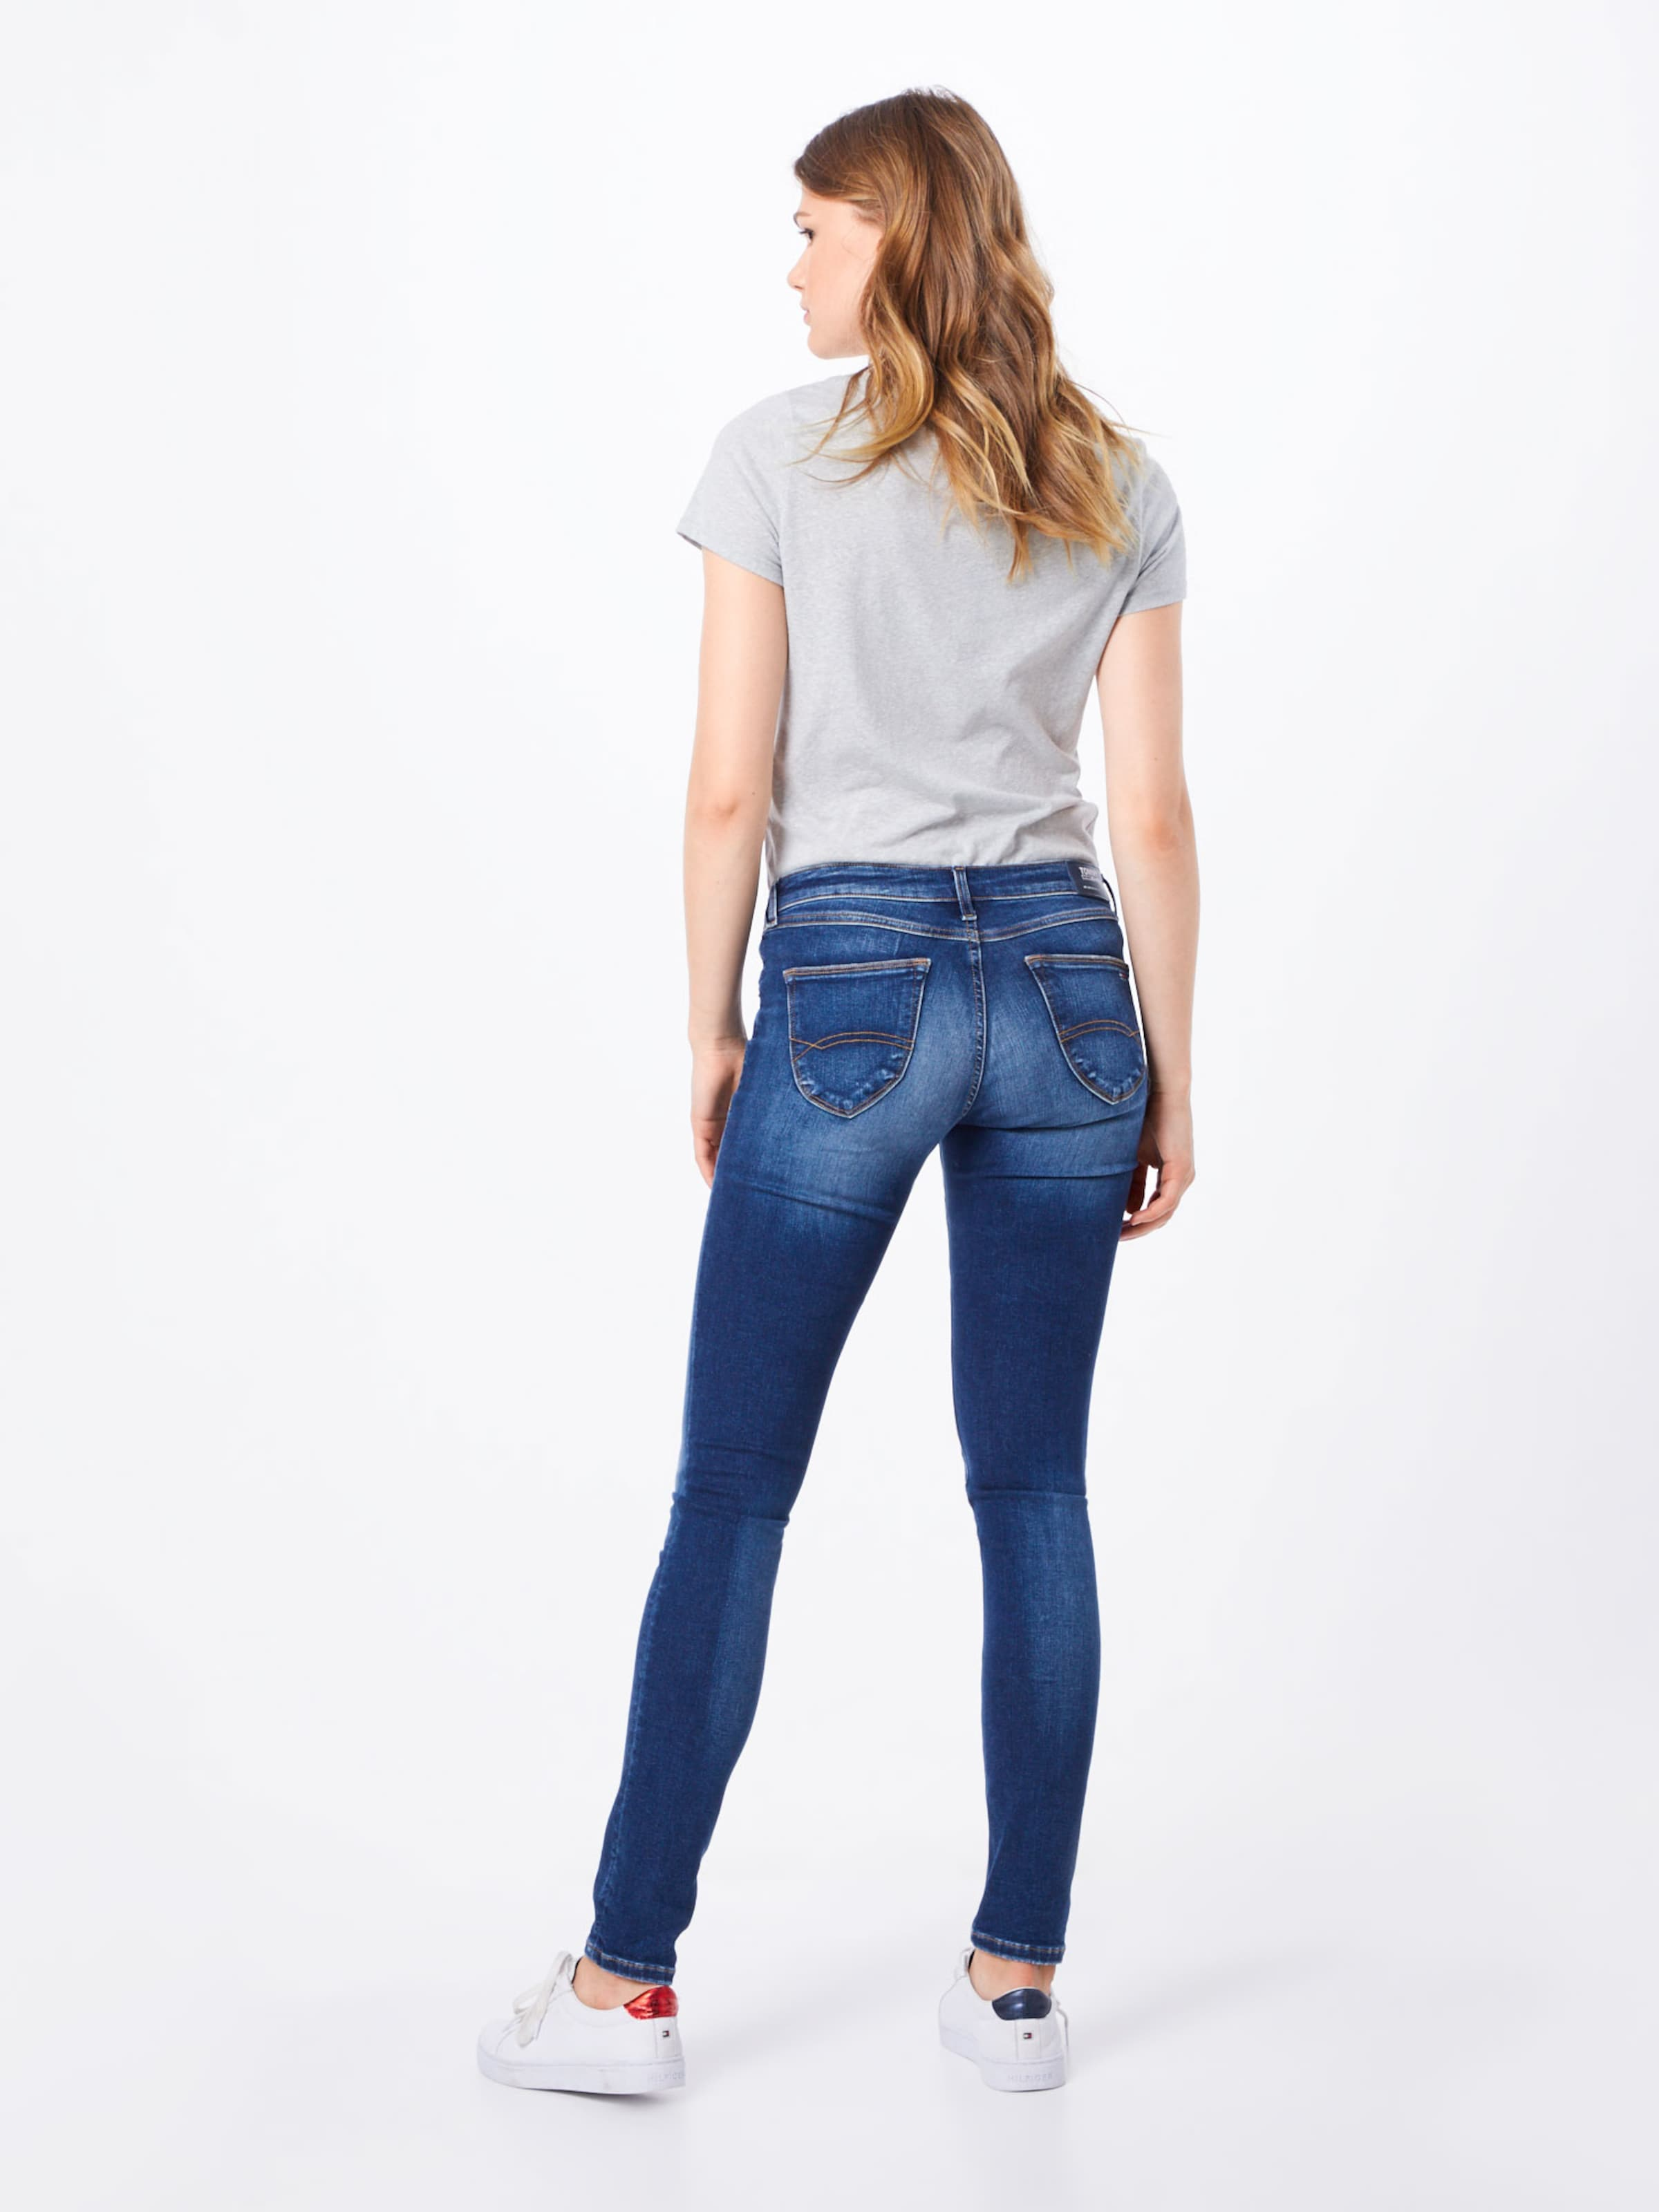 Orgk' 'sophie Tommy In Jeans Blue Denim 4LAR5jq3